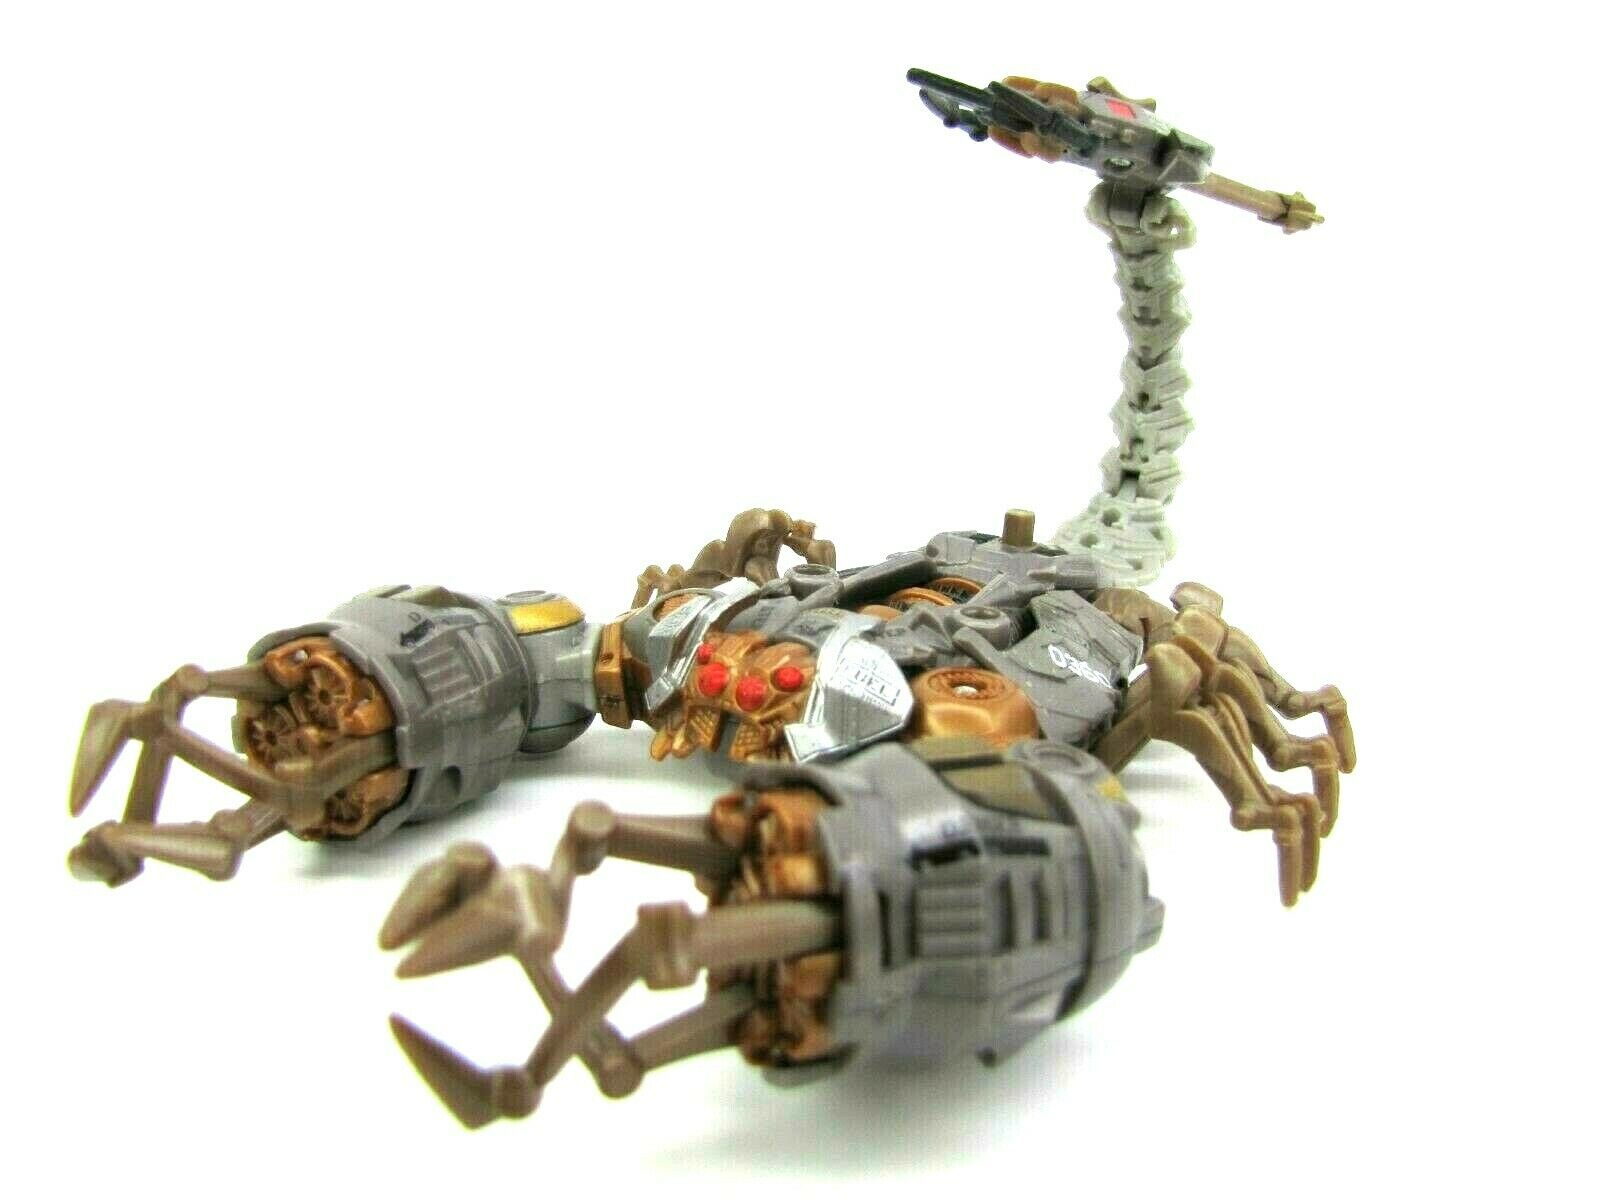 2007 Transformers Movie Decepticon Scorponok